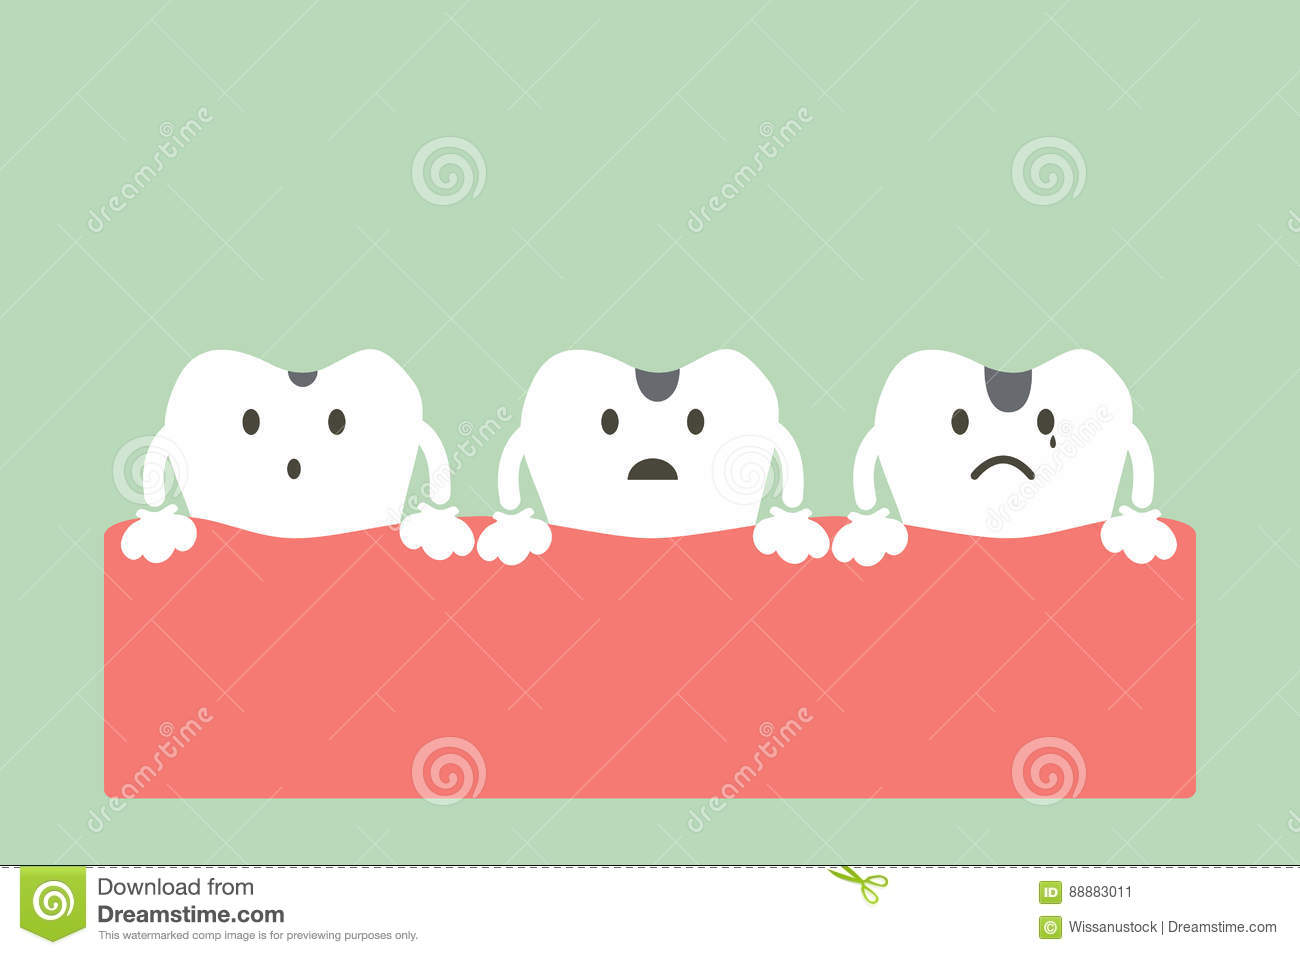 Stages Of Tooth Decay Illustration 88883011 - Megapixl